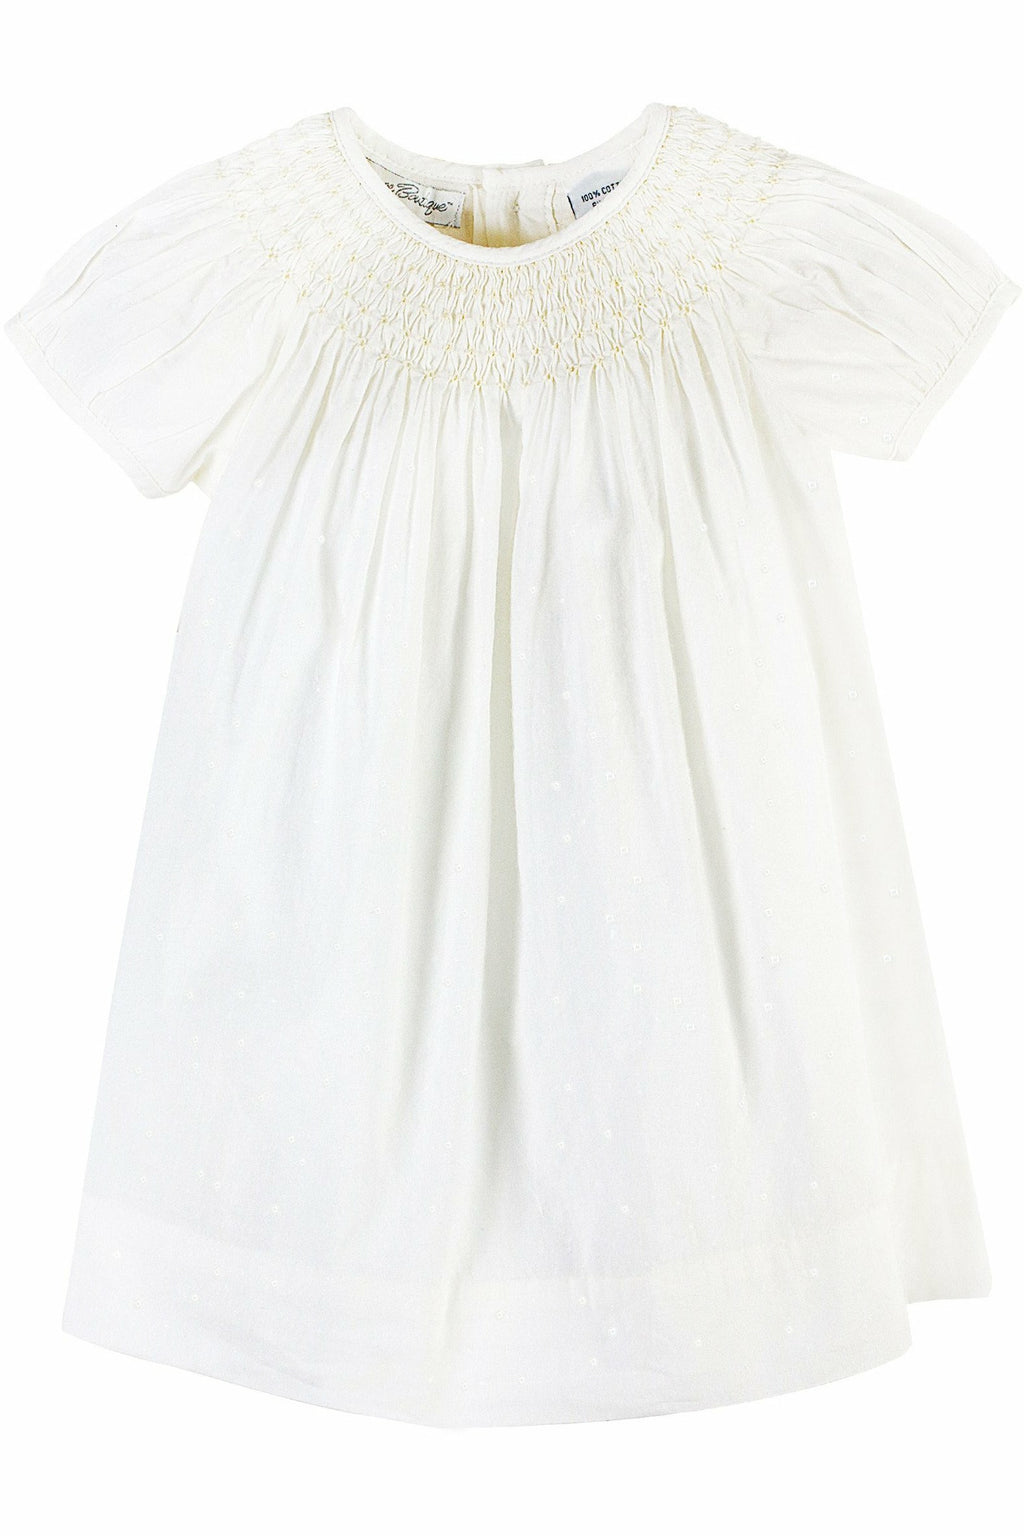 Baby Girls Classic Christening Bishop Dress & Bonnet - Cream